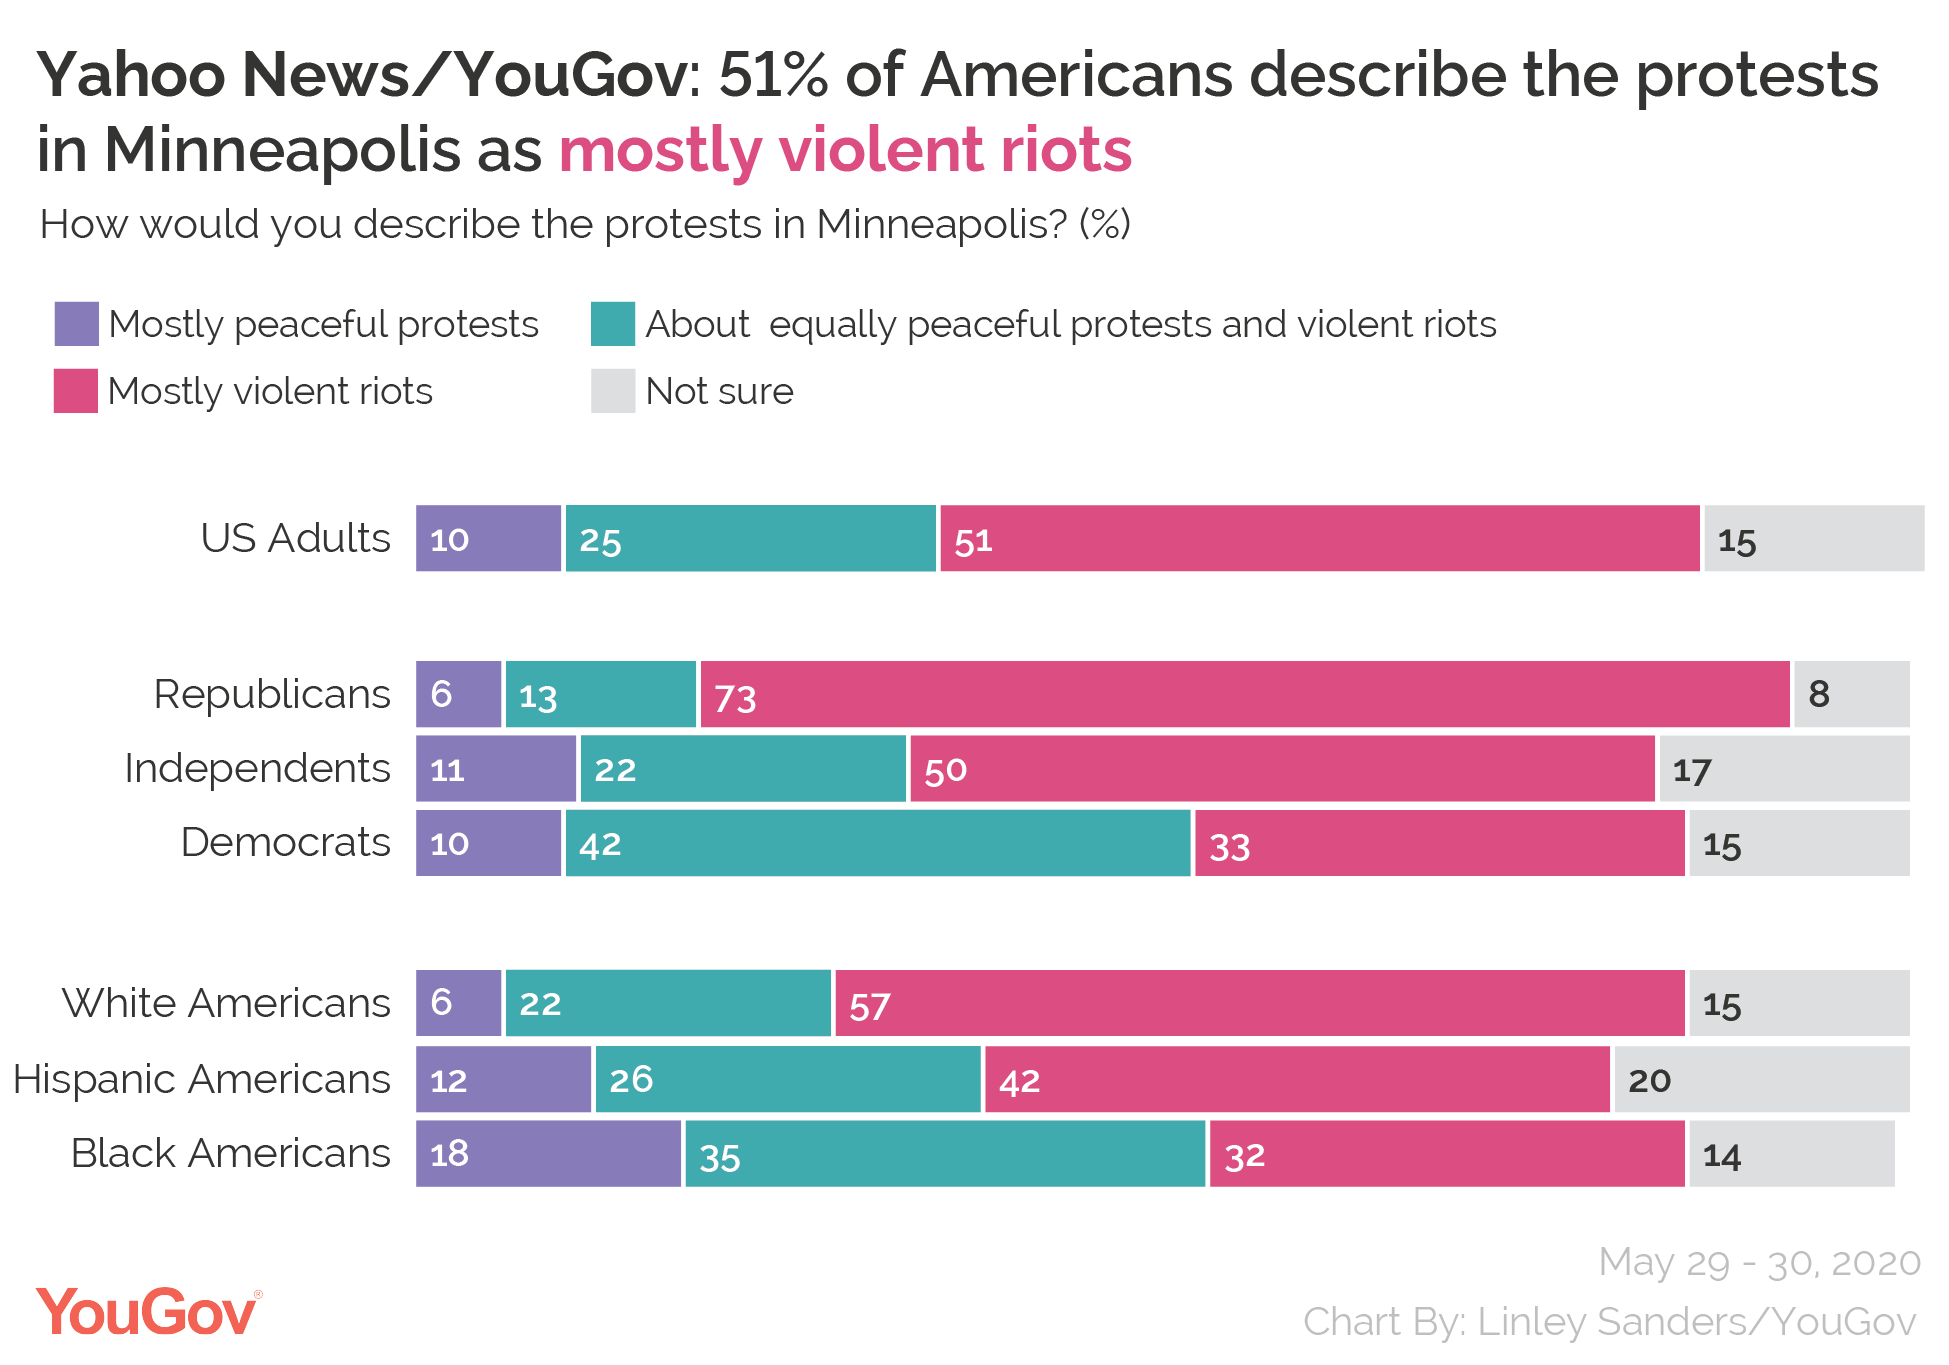 Yahoo News/YouGov: 51% of Americans describe the protests in Minneapolis as mostly violent riots